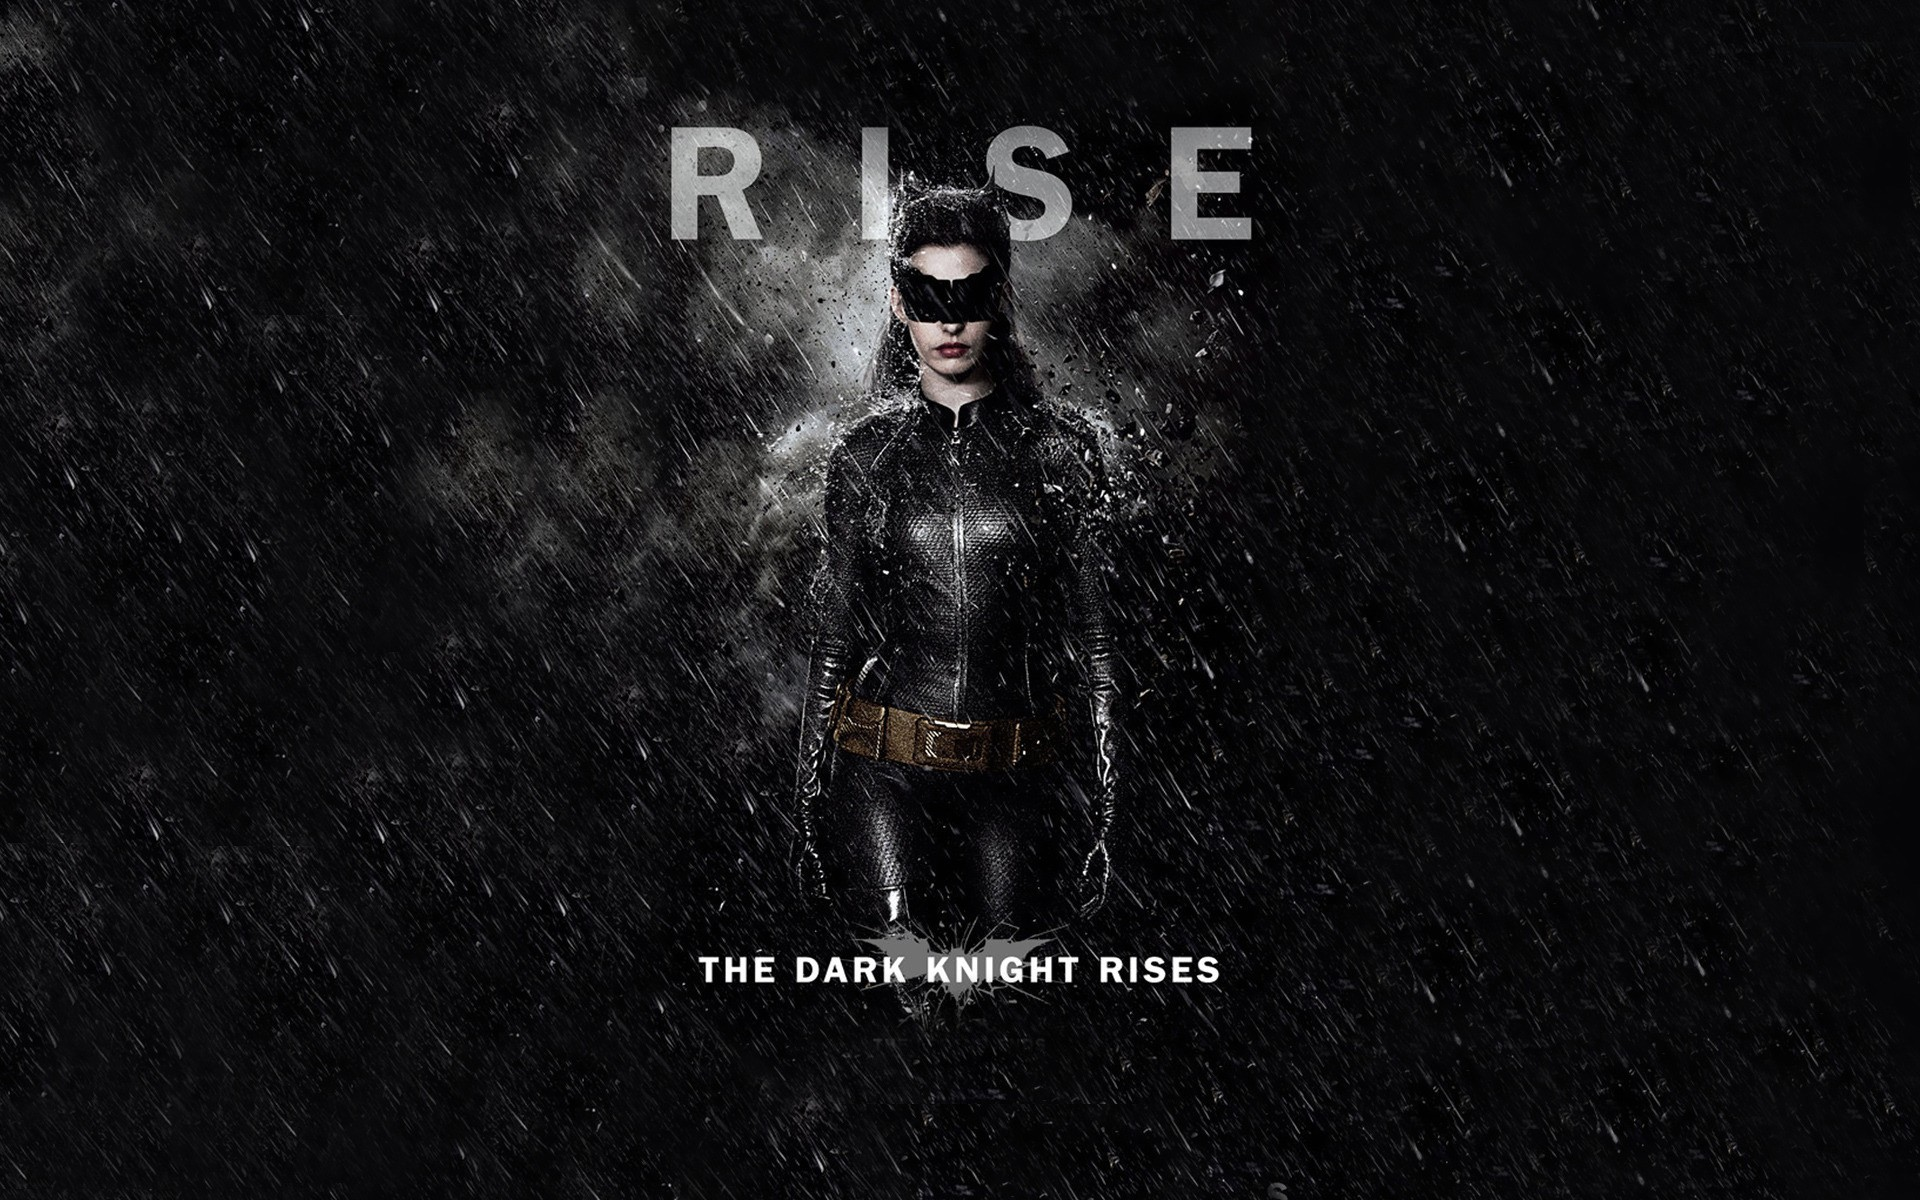 The Dark Knight Rises Wallpapers, Pictures, Images